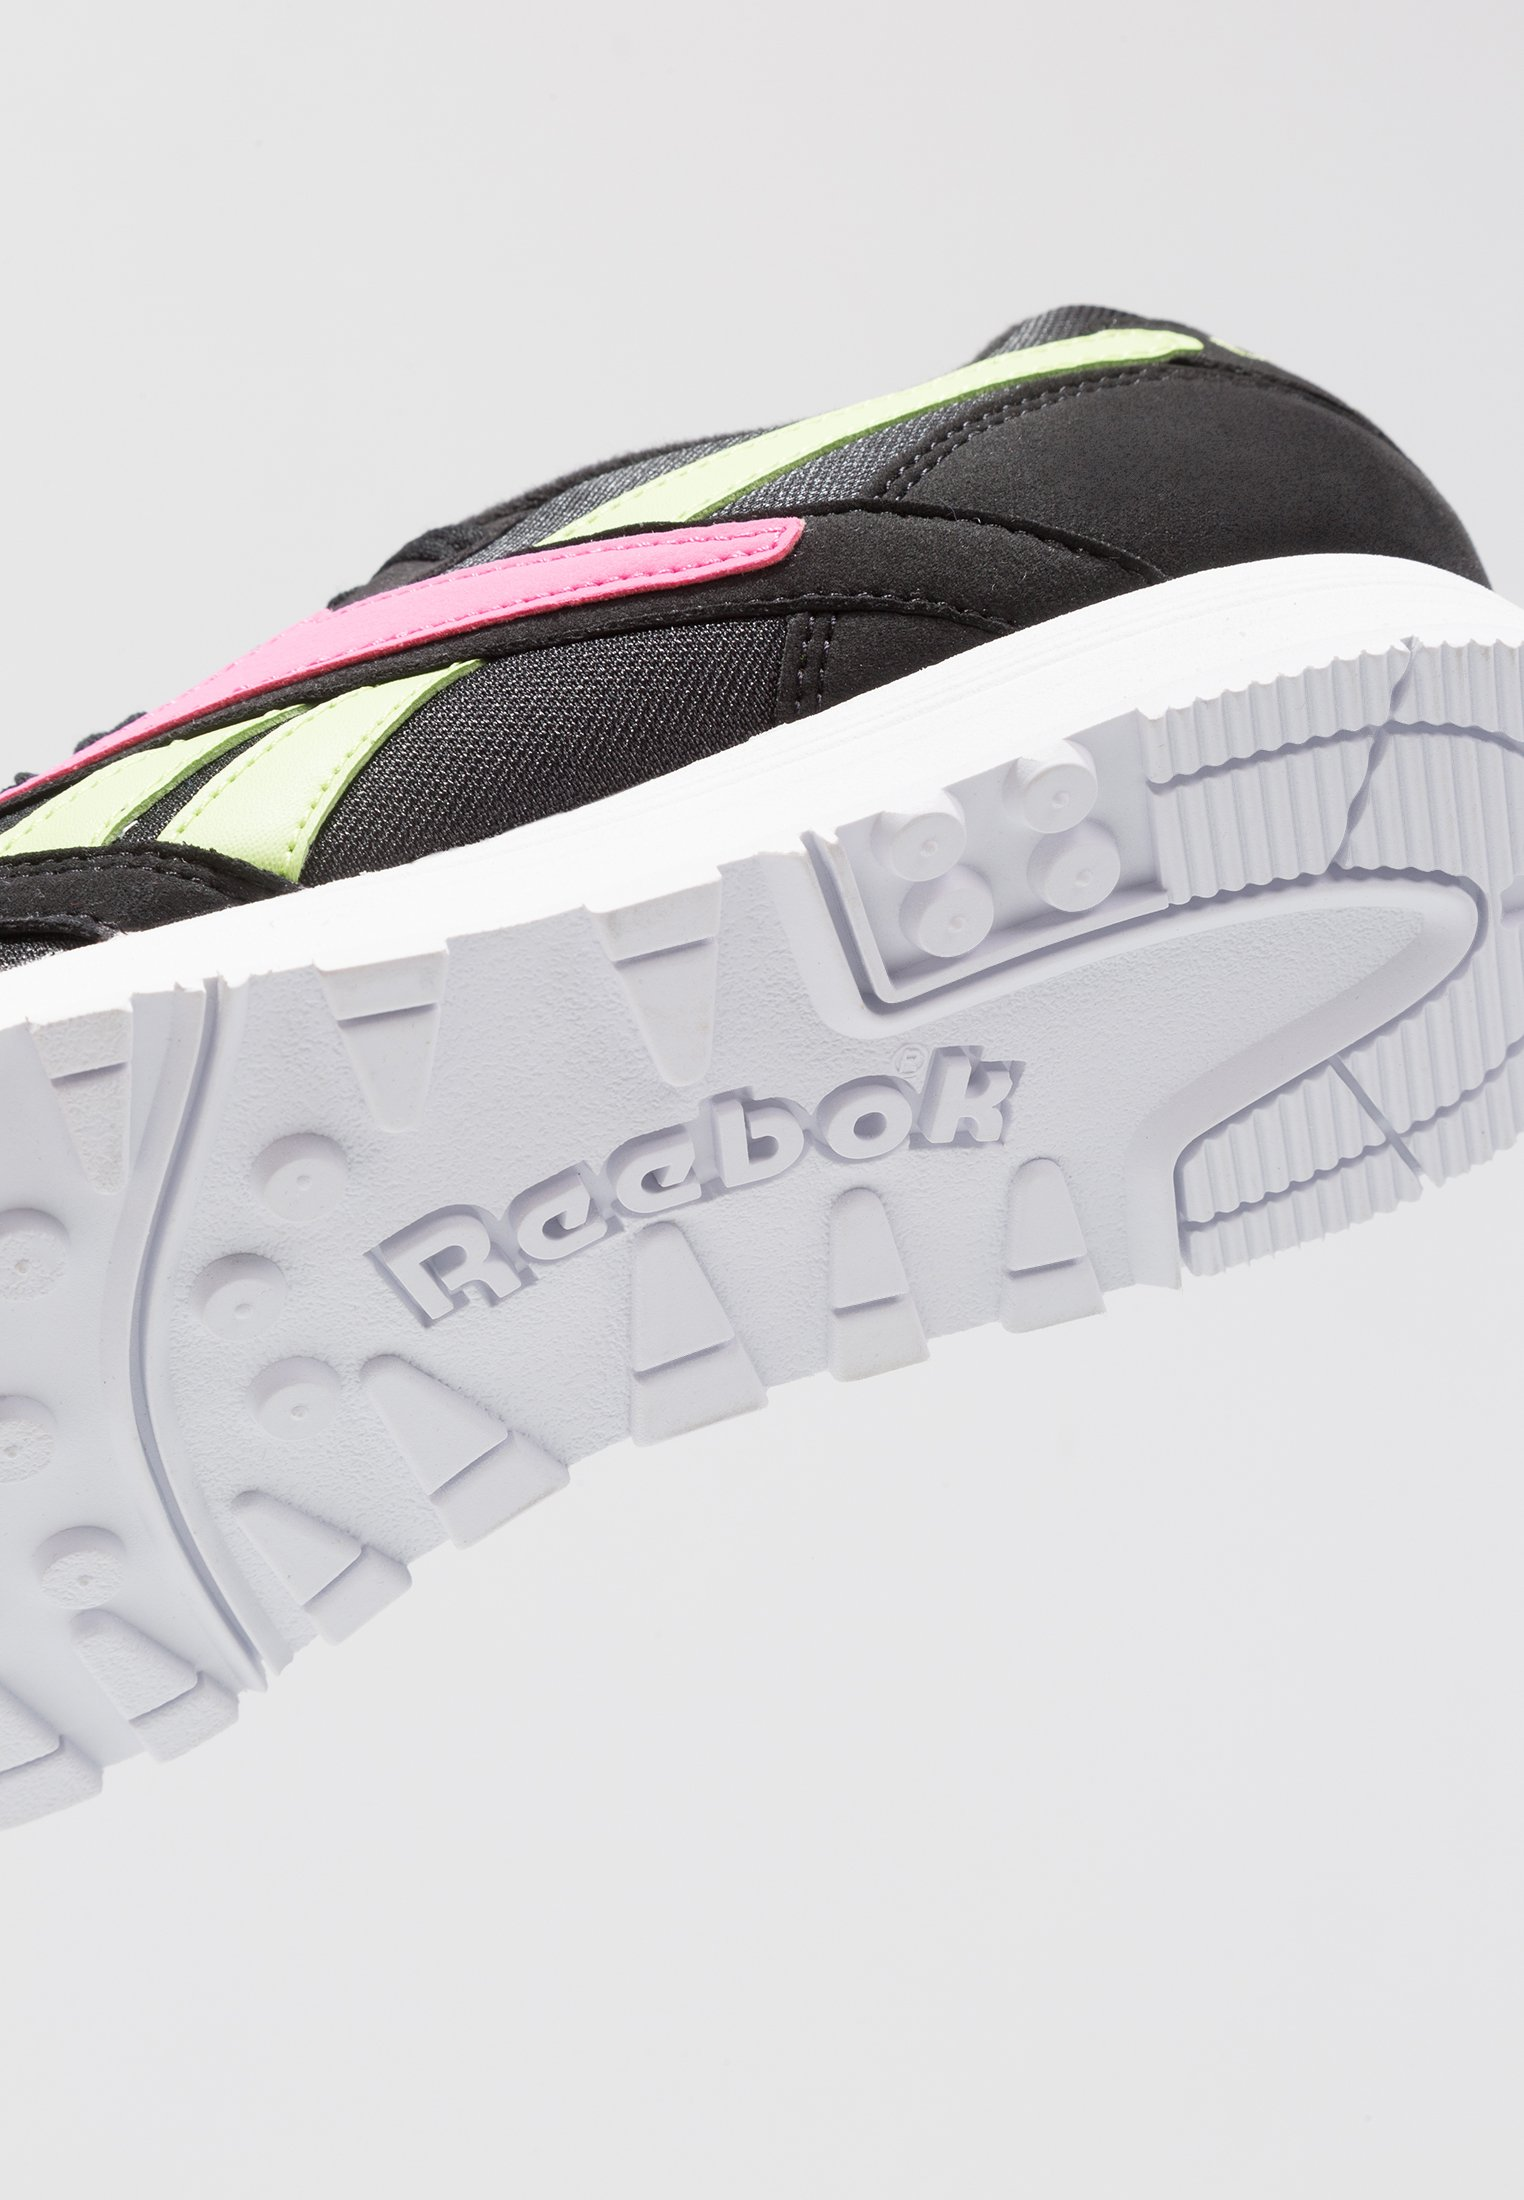 Reebok Classic Rapide - Sneakers Black/white/pink/lime